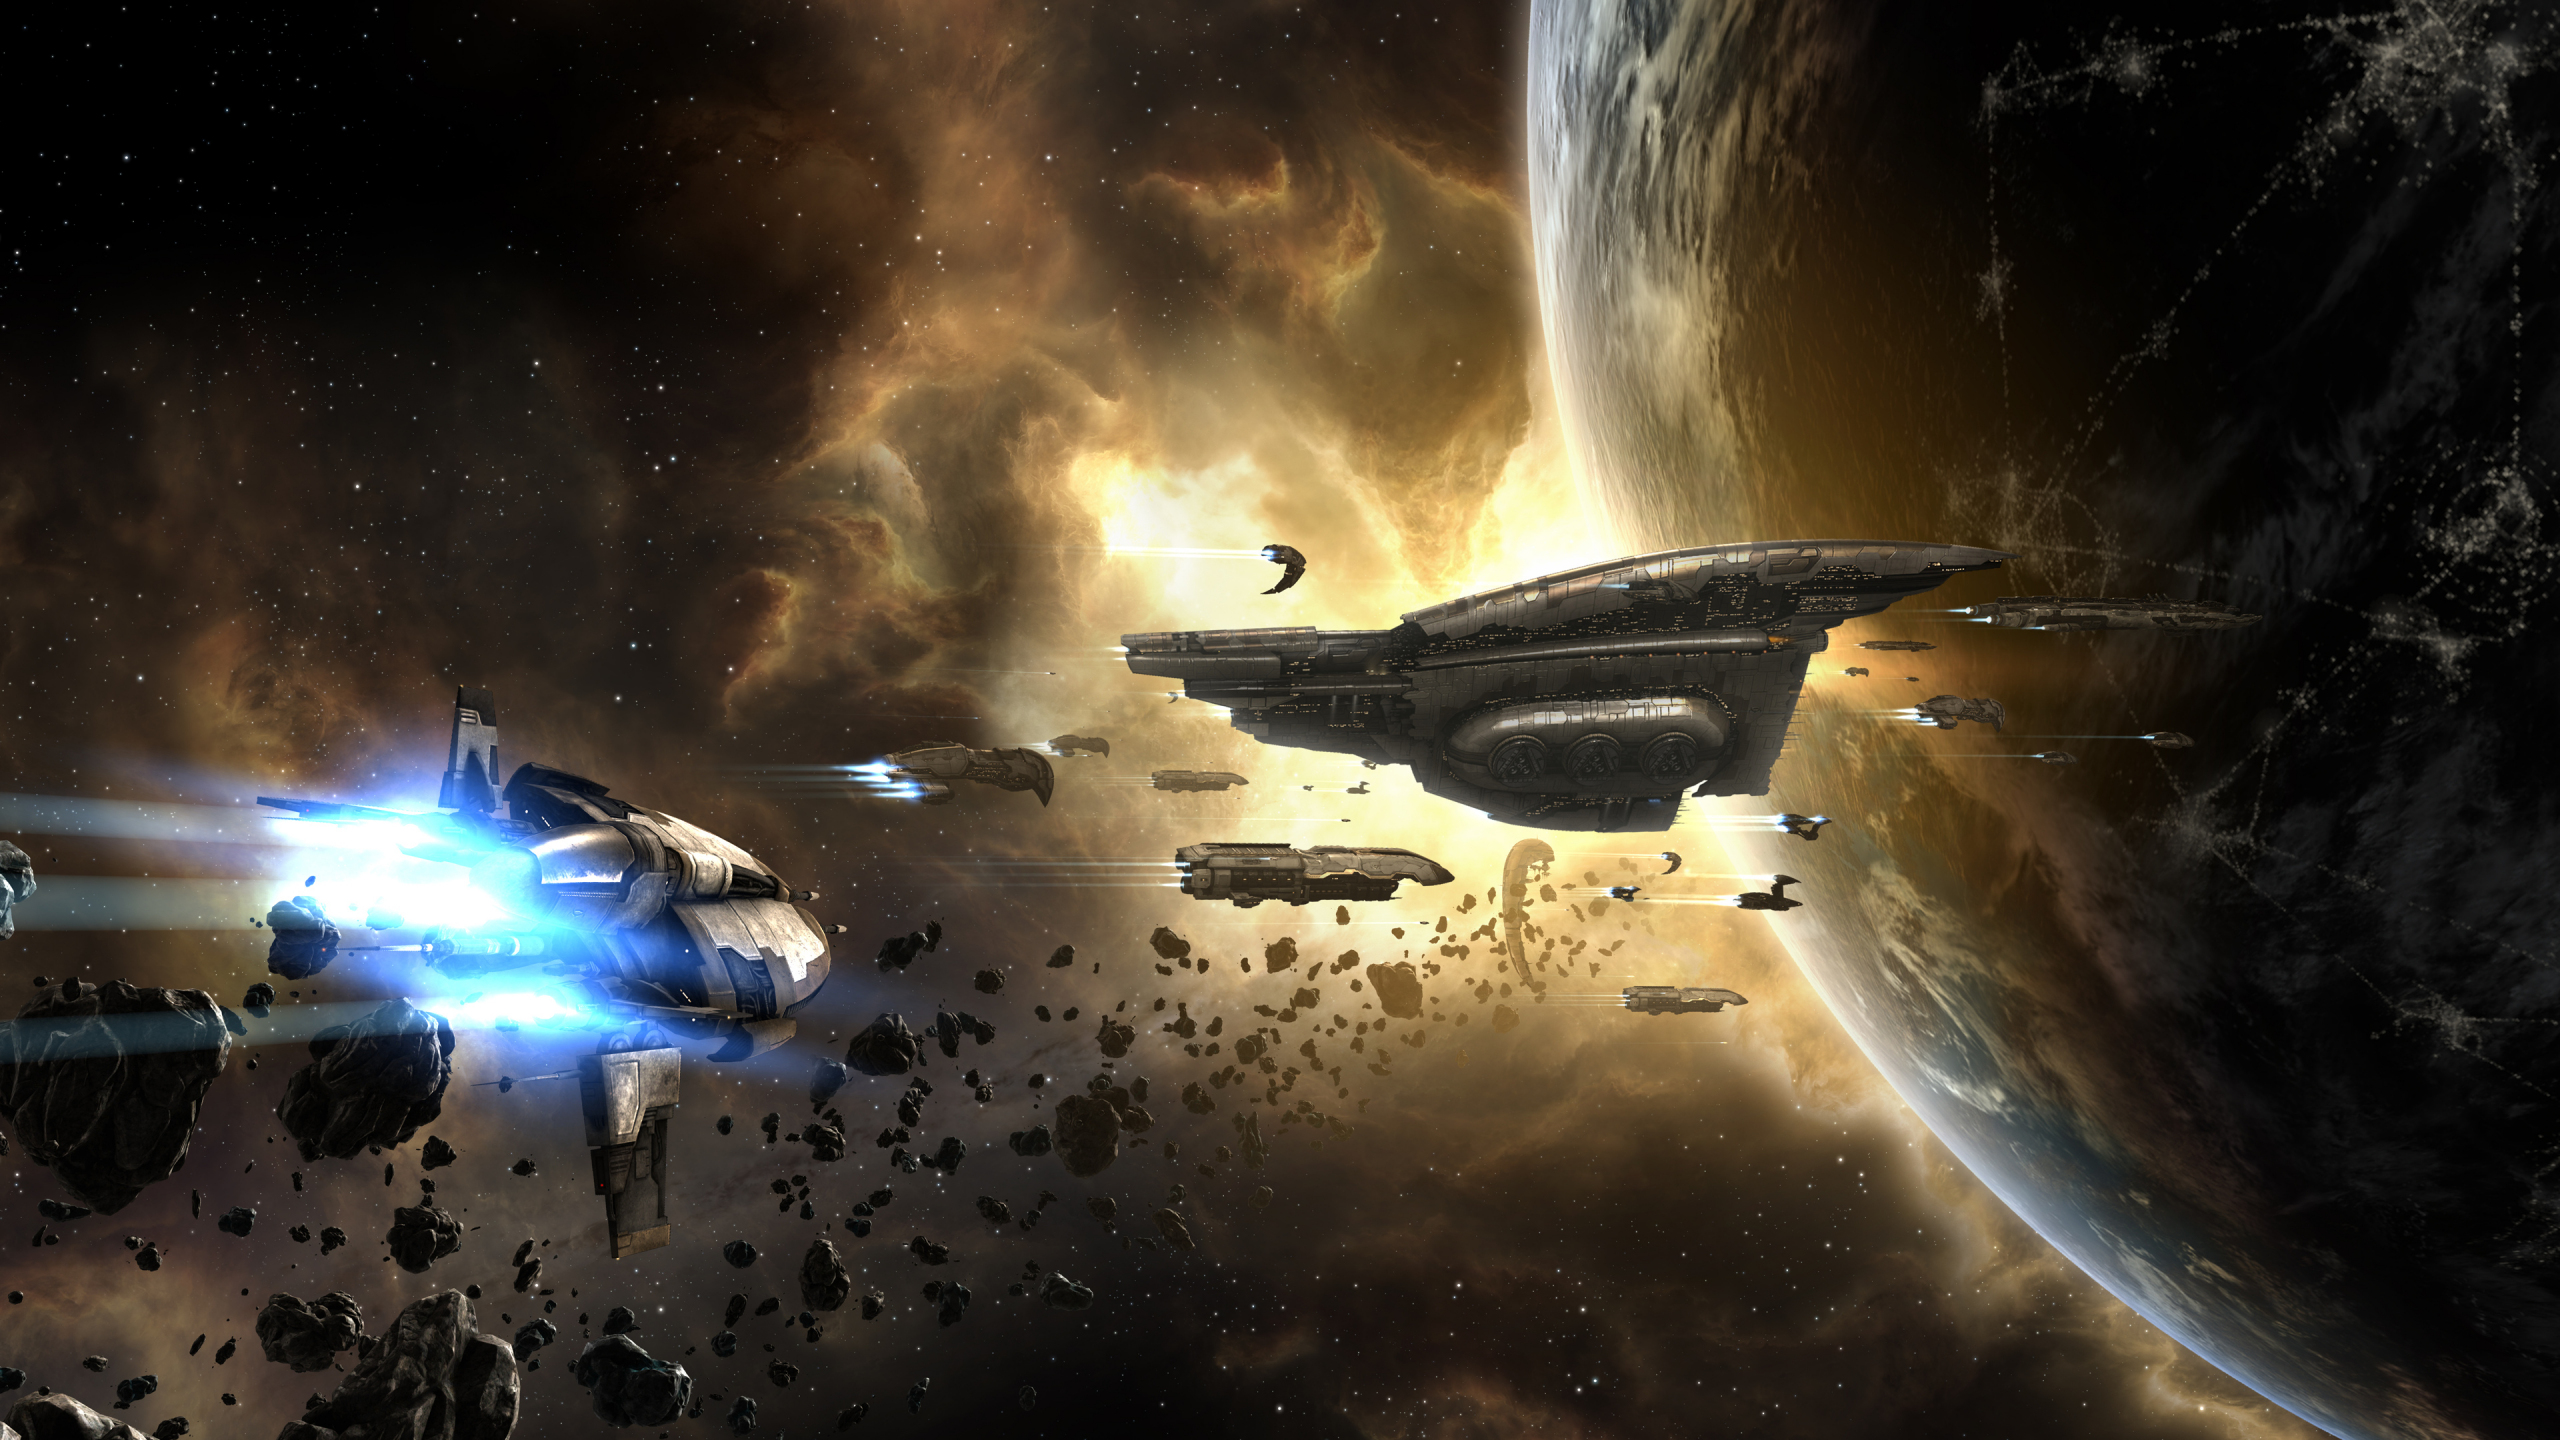 Download 2560x1440 Wallpaper Eve Online Video Game Wallpaper, Dual